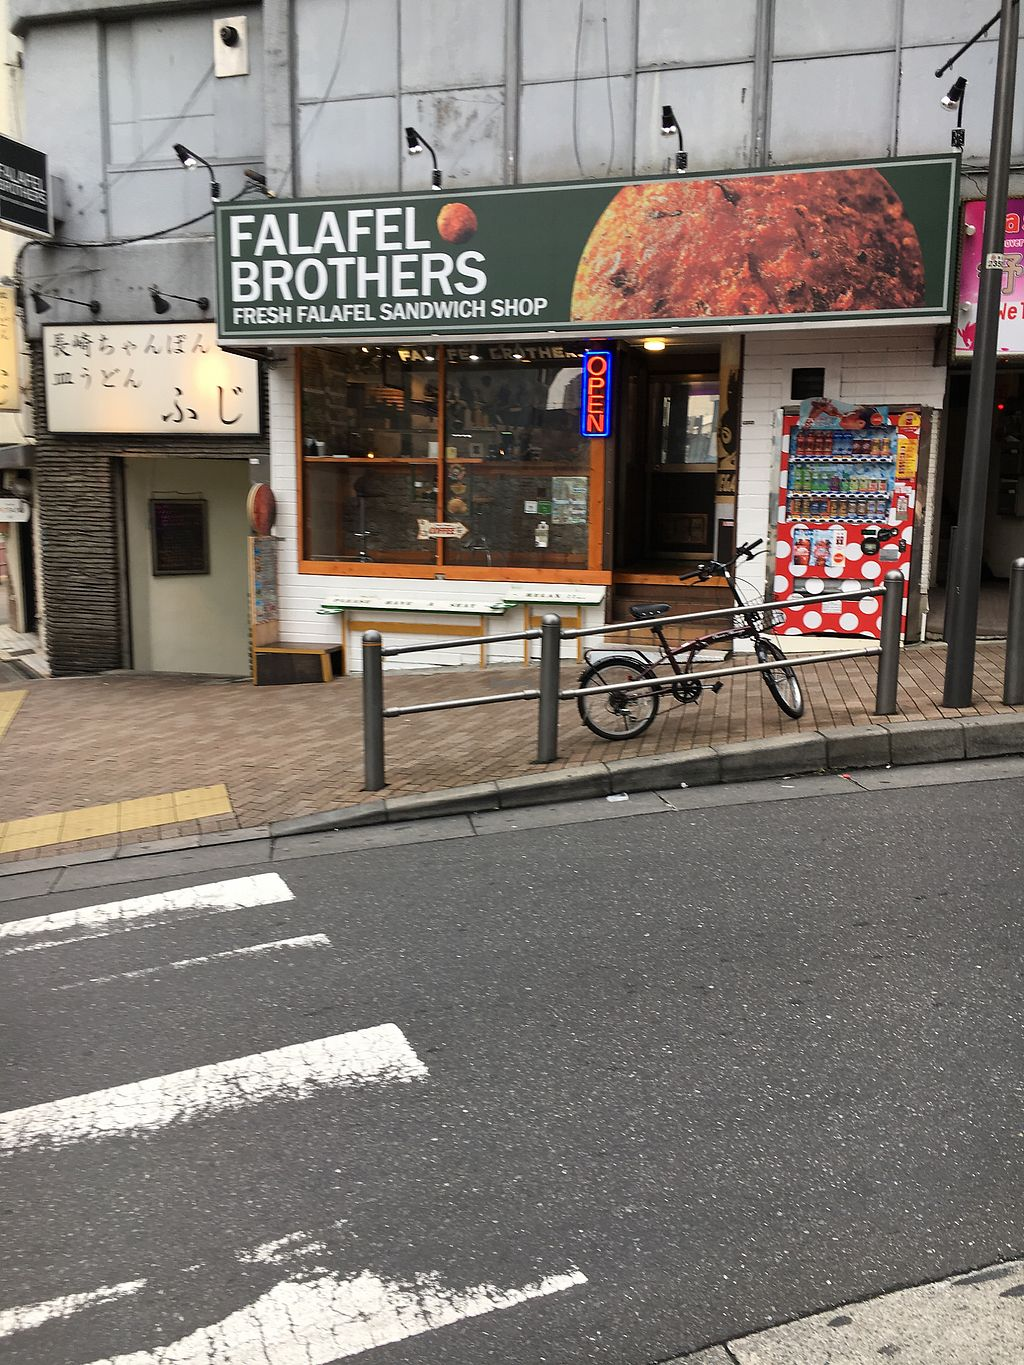 "Photo of Falafel Brothers  by <a href=""/members/profile/Cikacule"">Cikacule</a> <br/>Front of shop <br/> September 6, 2017  - <a href='/contact/abuse/image/95517/301348'>Report</a>"